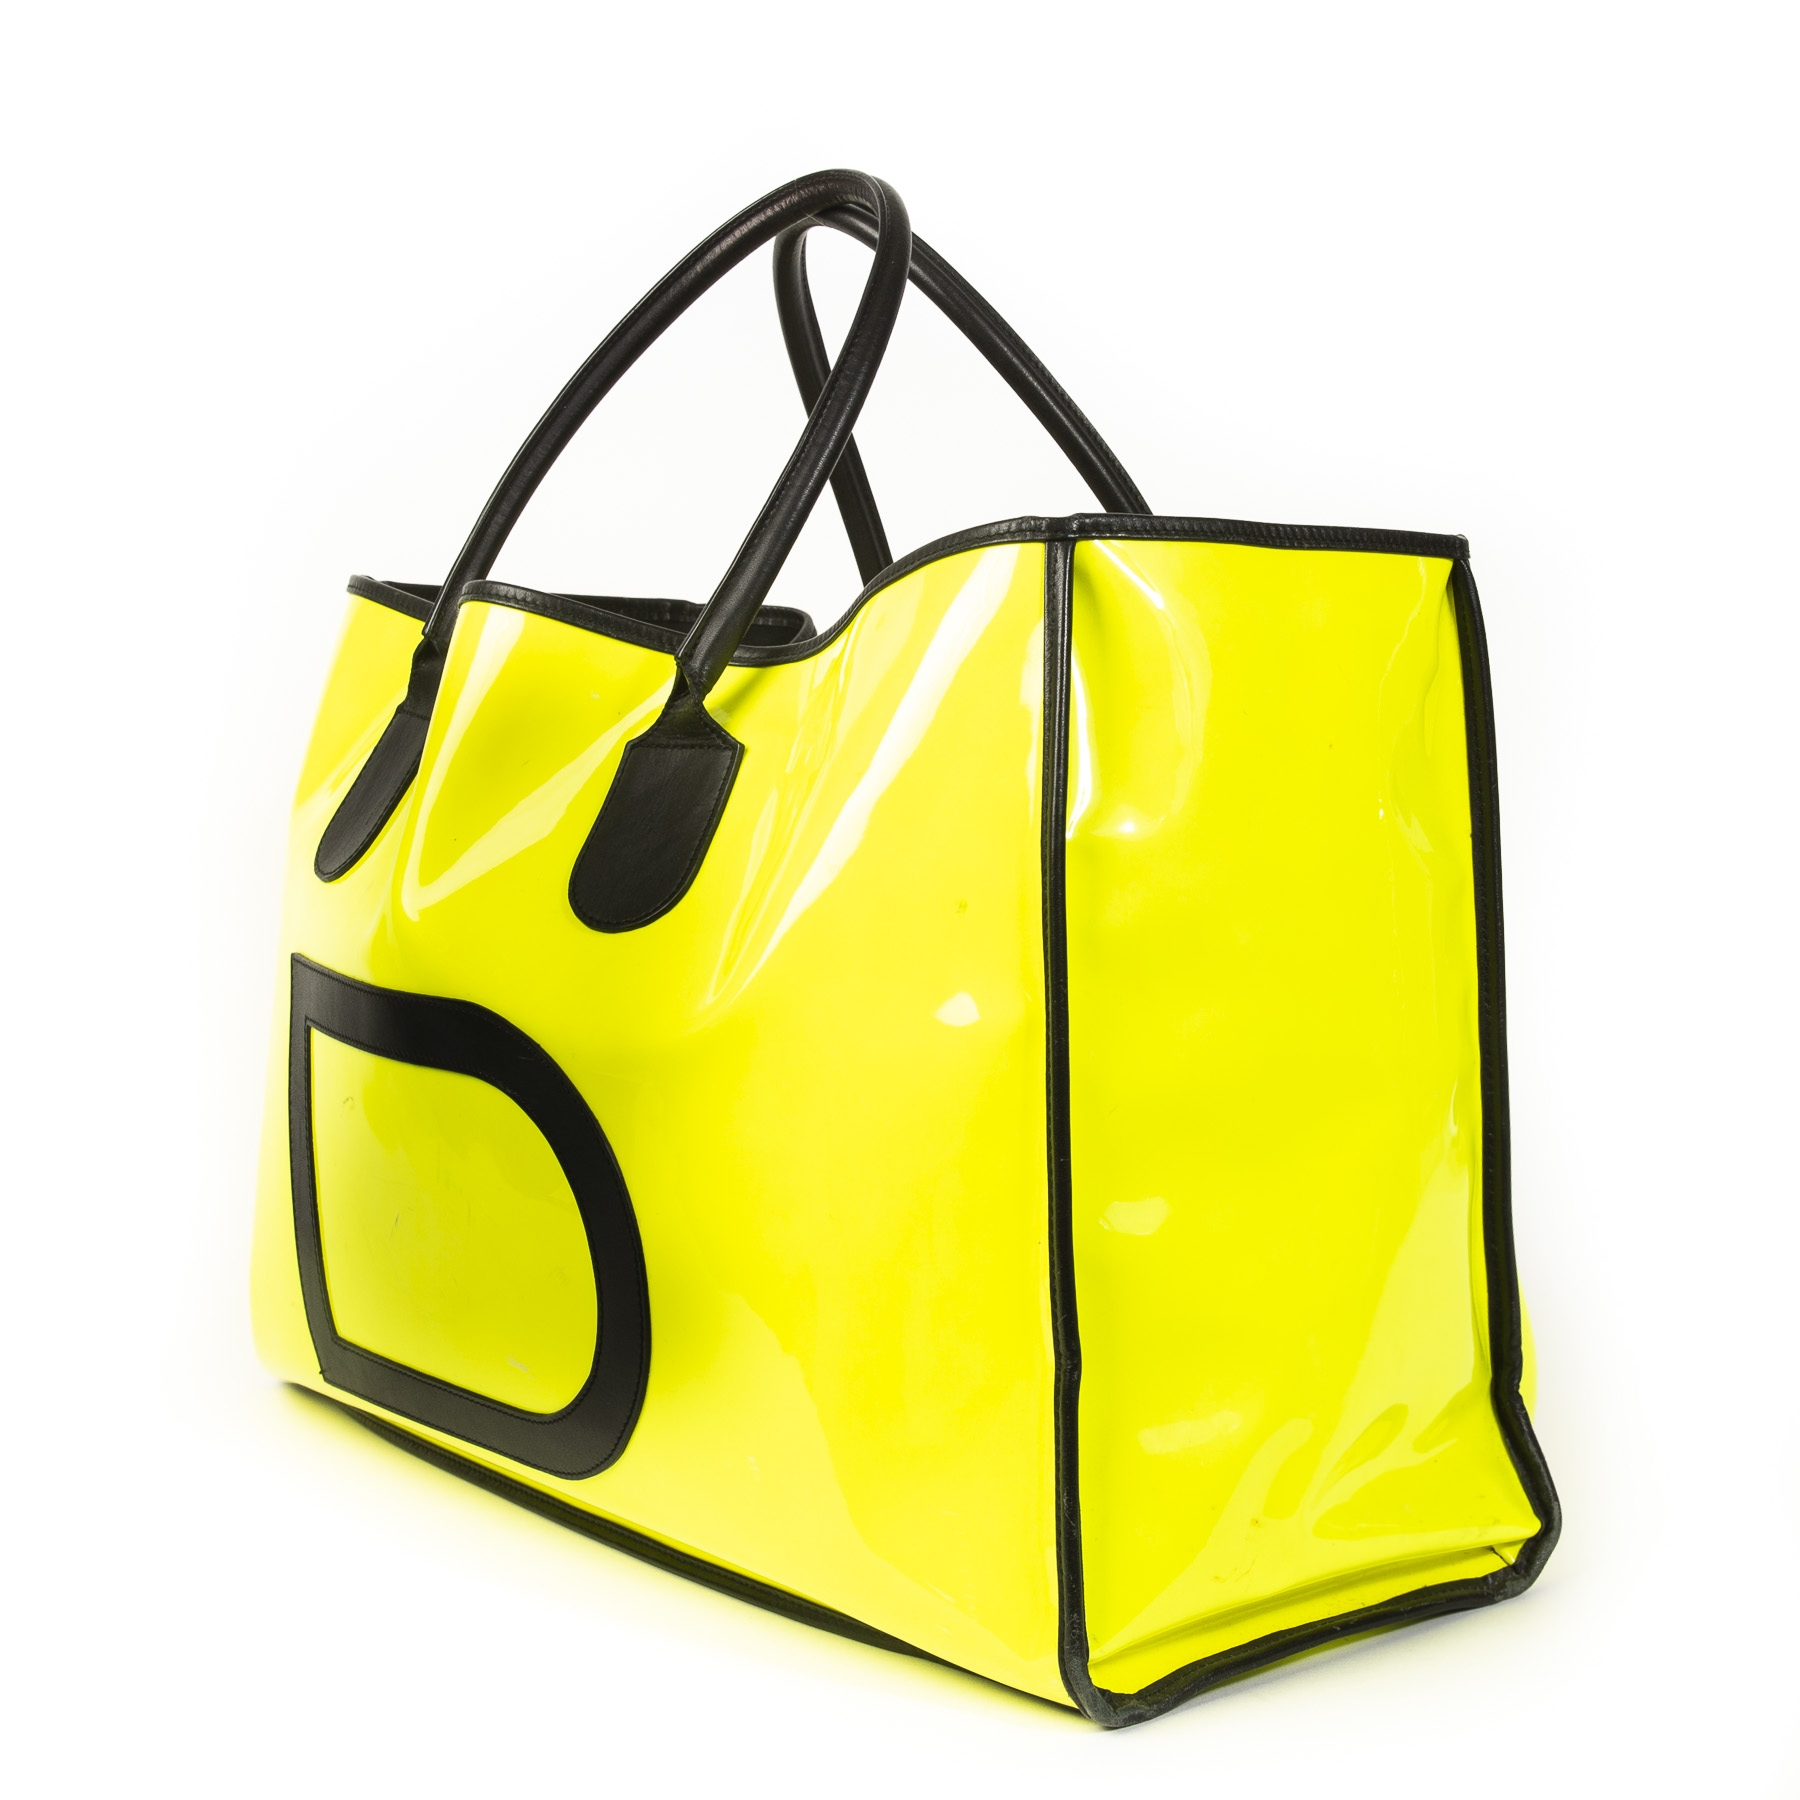 Authentieke tweedehands vintage Delvaux Taxi Vernis Neon Yellow Travel Bag bij online webshop LabelLOV